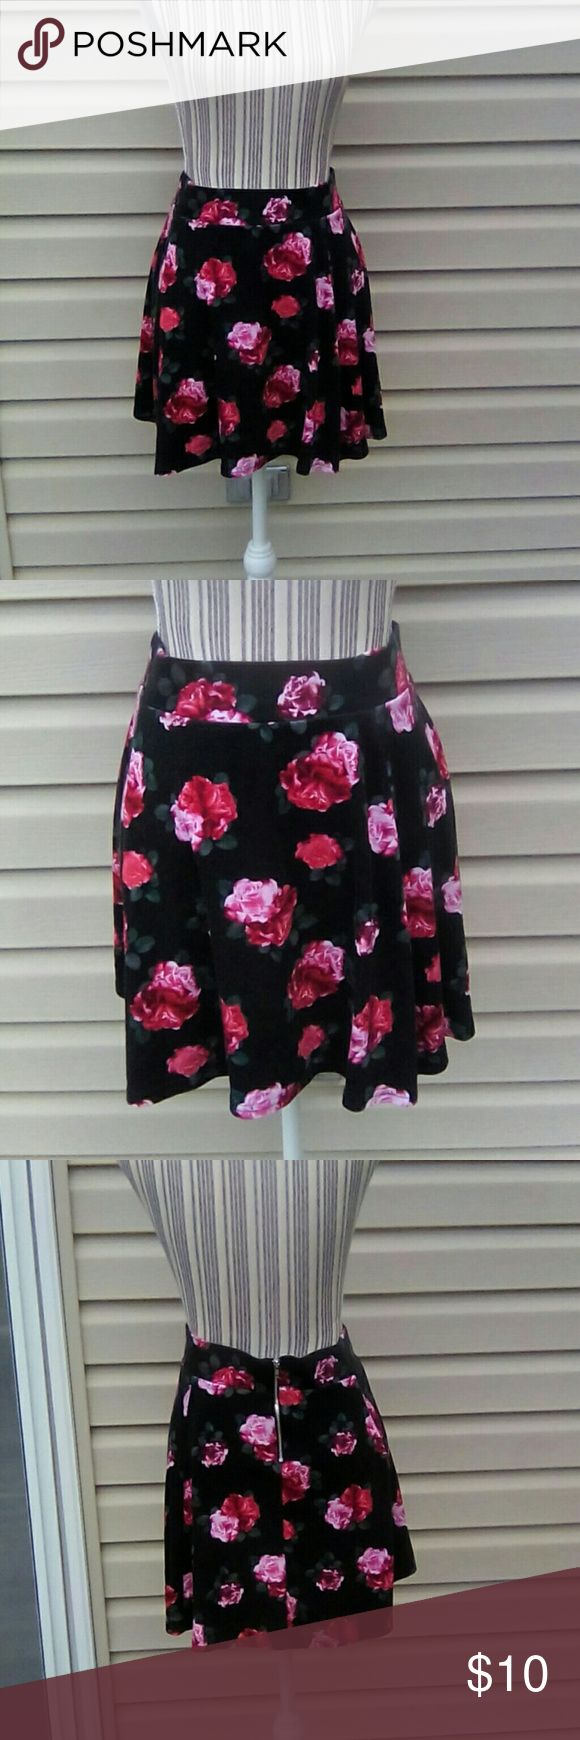 H&M Divided Black w/Roses Skirt Sz Large H&M Divided Skirt. Black with red and pink roses. It has a zipper down the back. Polyester/Elastin/Viscose Blend. Size Large. Very cute. Can be dressy or casual. Worn about 5 times. Smoke free home H&M Divided Skirts